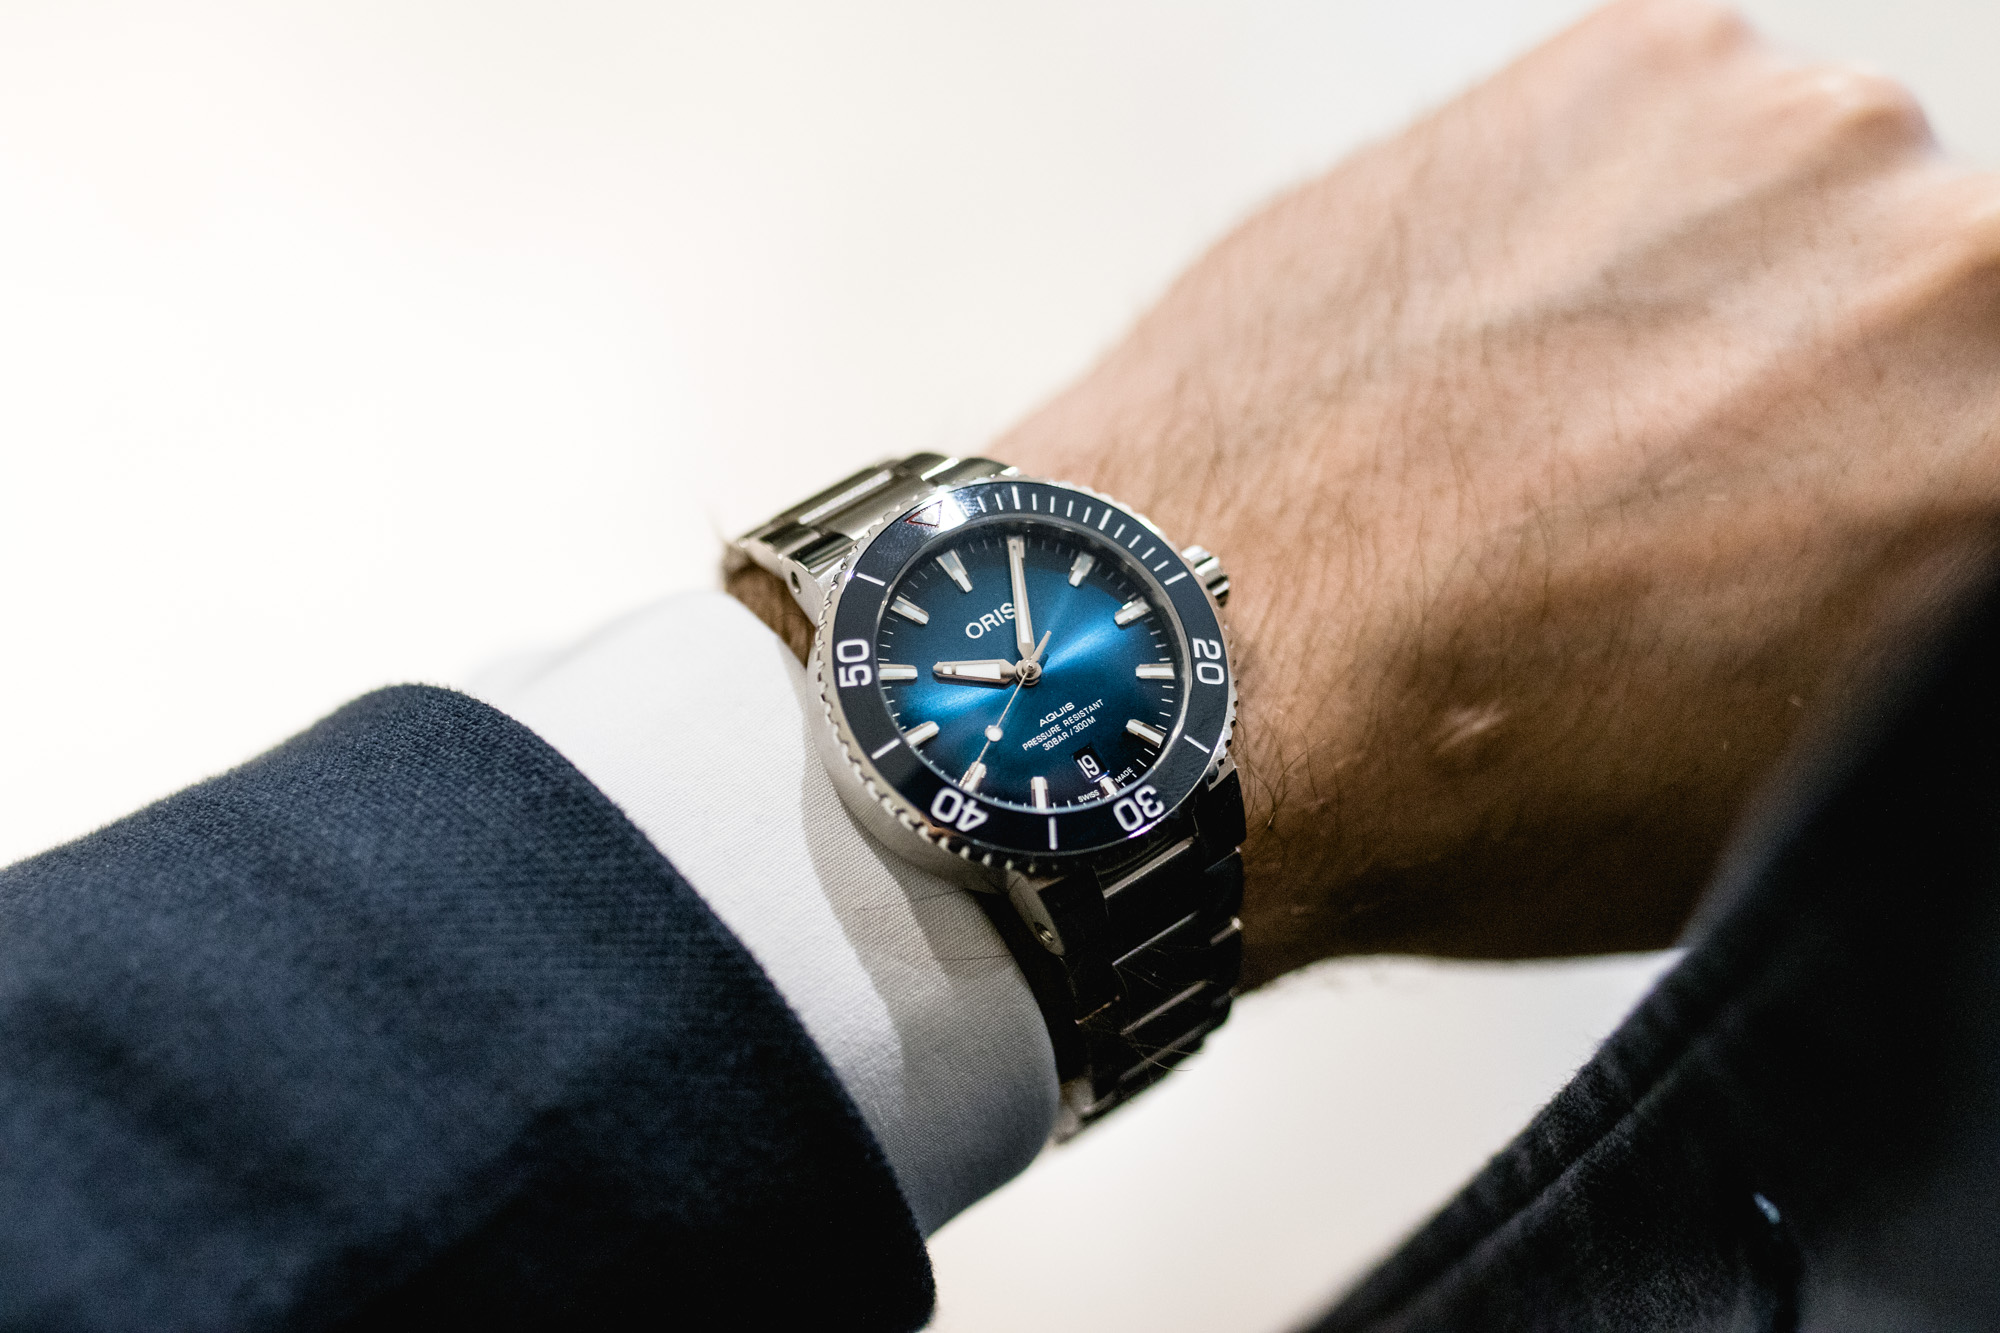 Oris Aquis Clean Ocean Limited Edition - Baselworld 2019